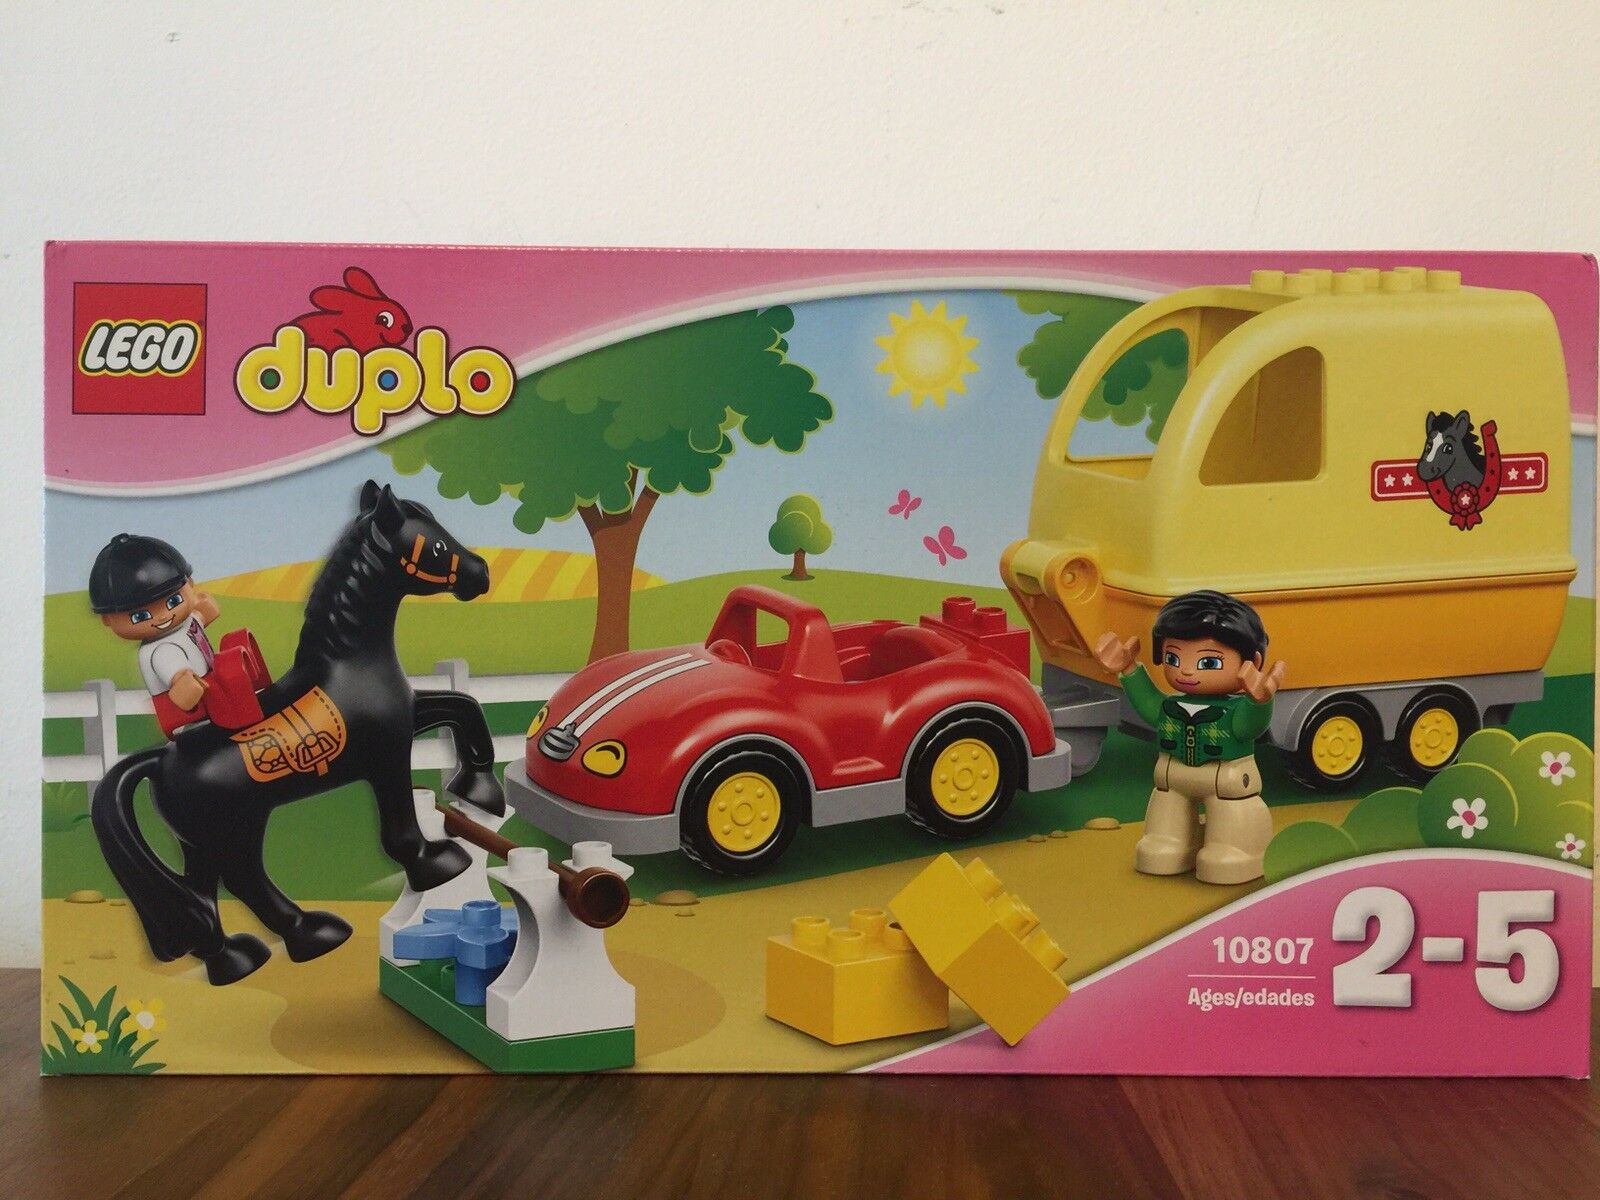 Lego Duplo Horse Trailer 10807 (New Unopened) Recommended Age 2-5y